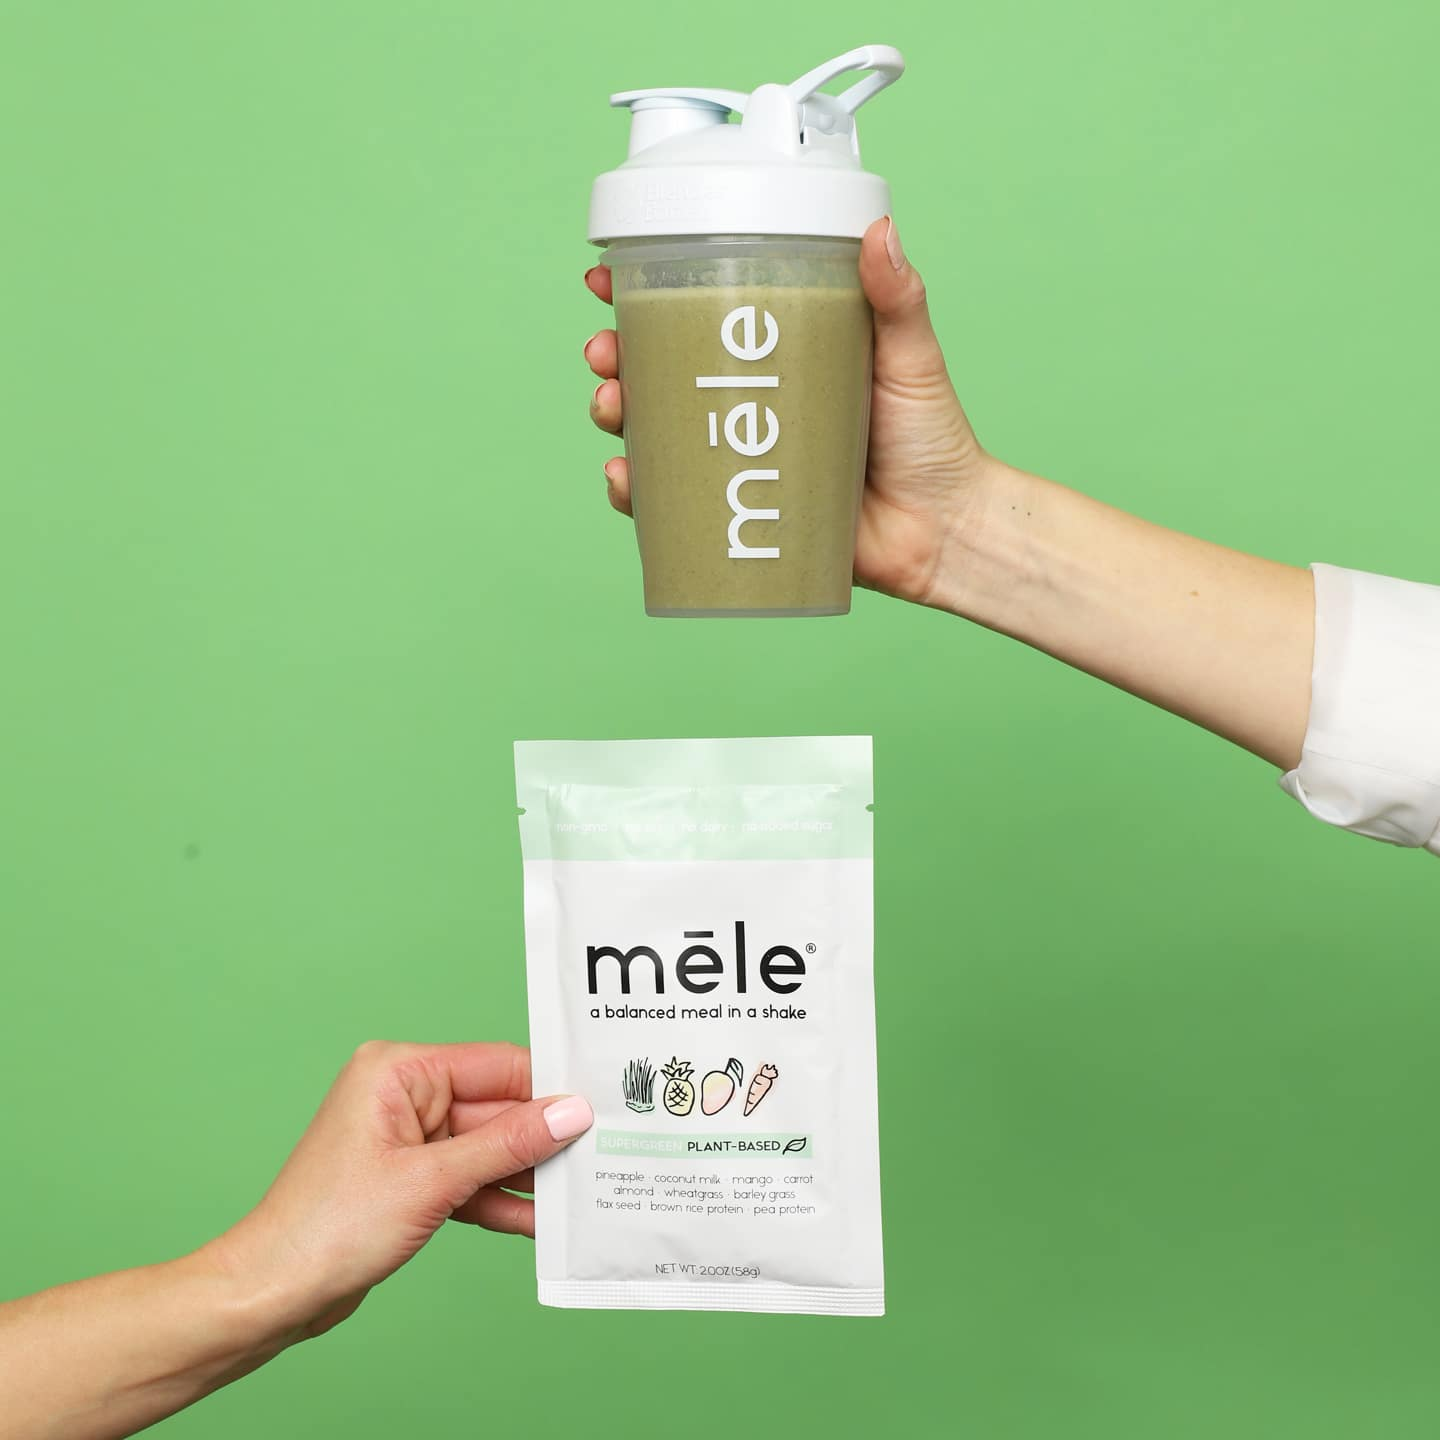 New Wellness Food Brand Mele Announces Launch